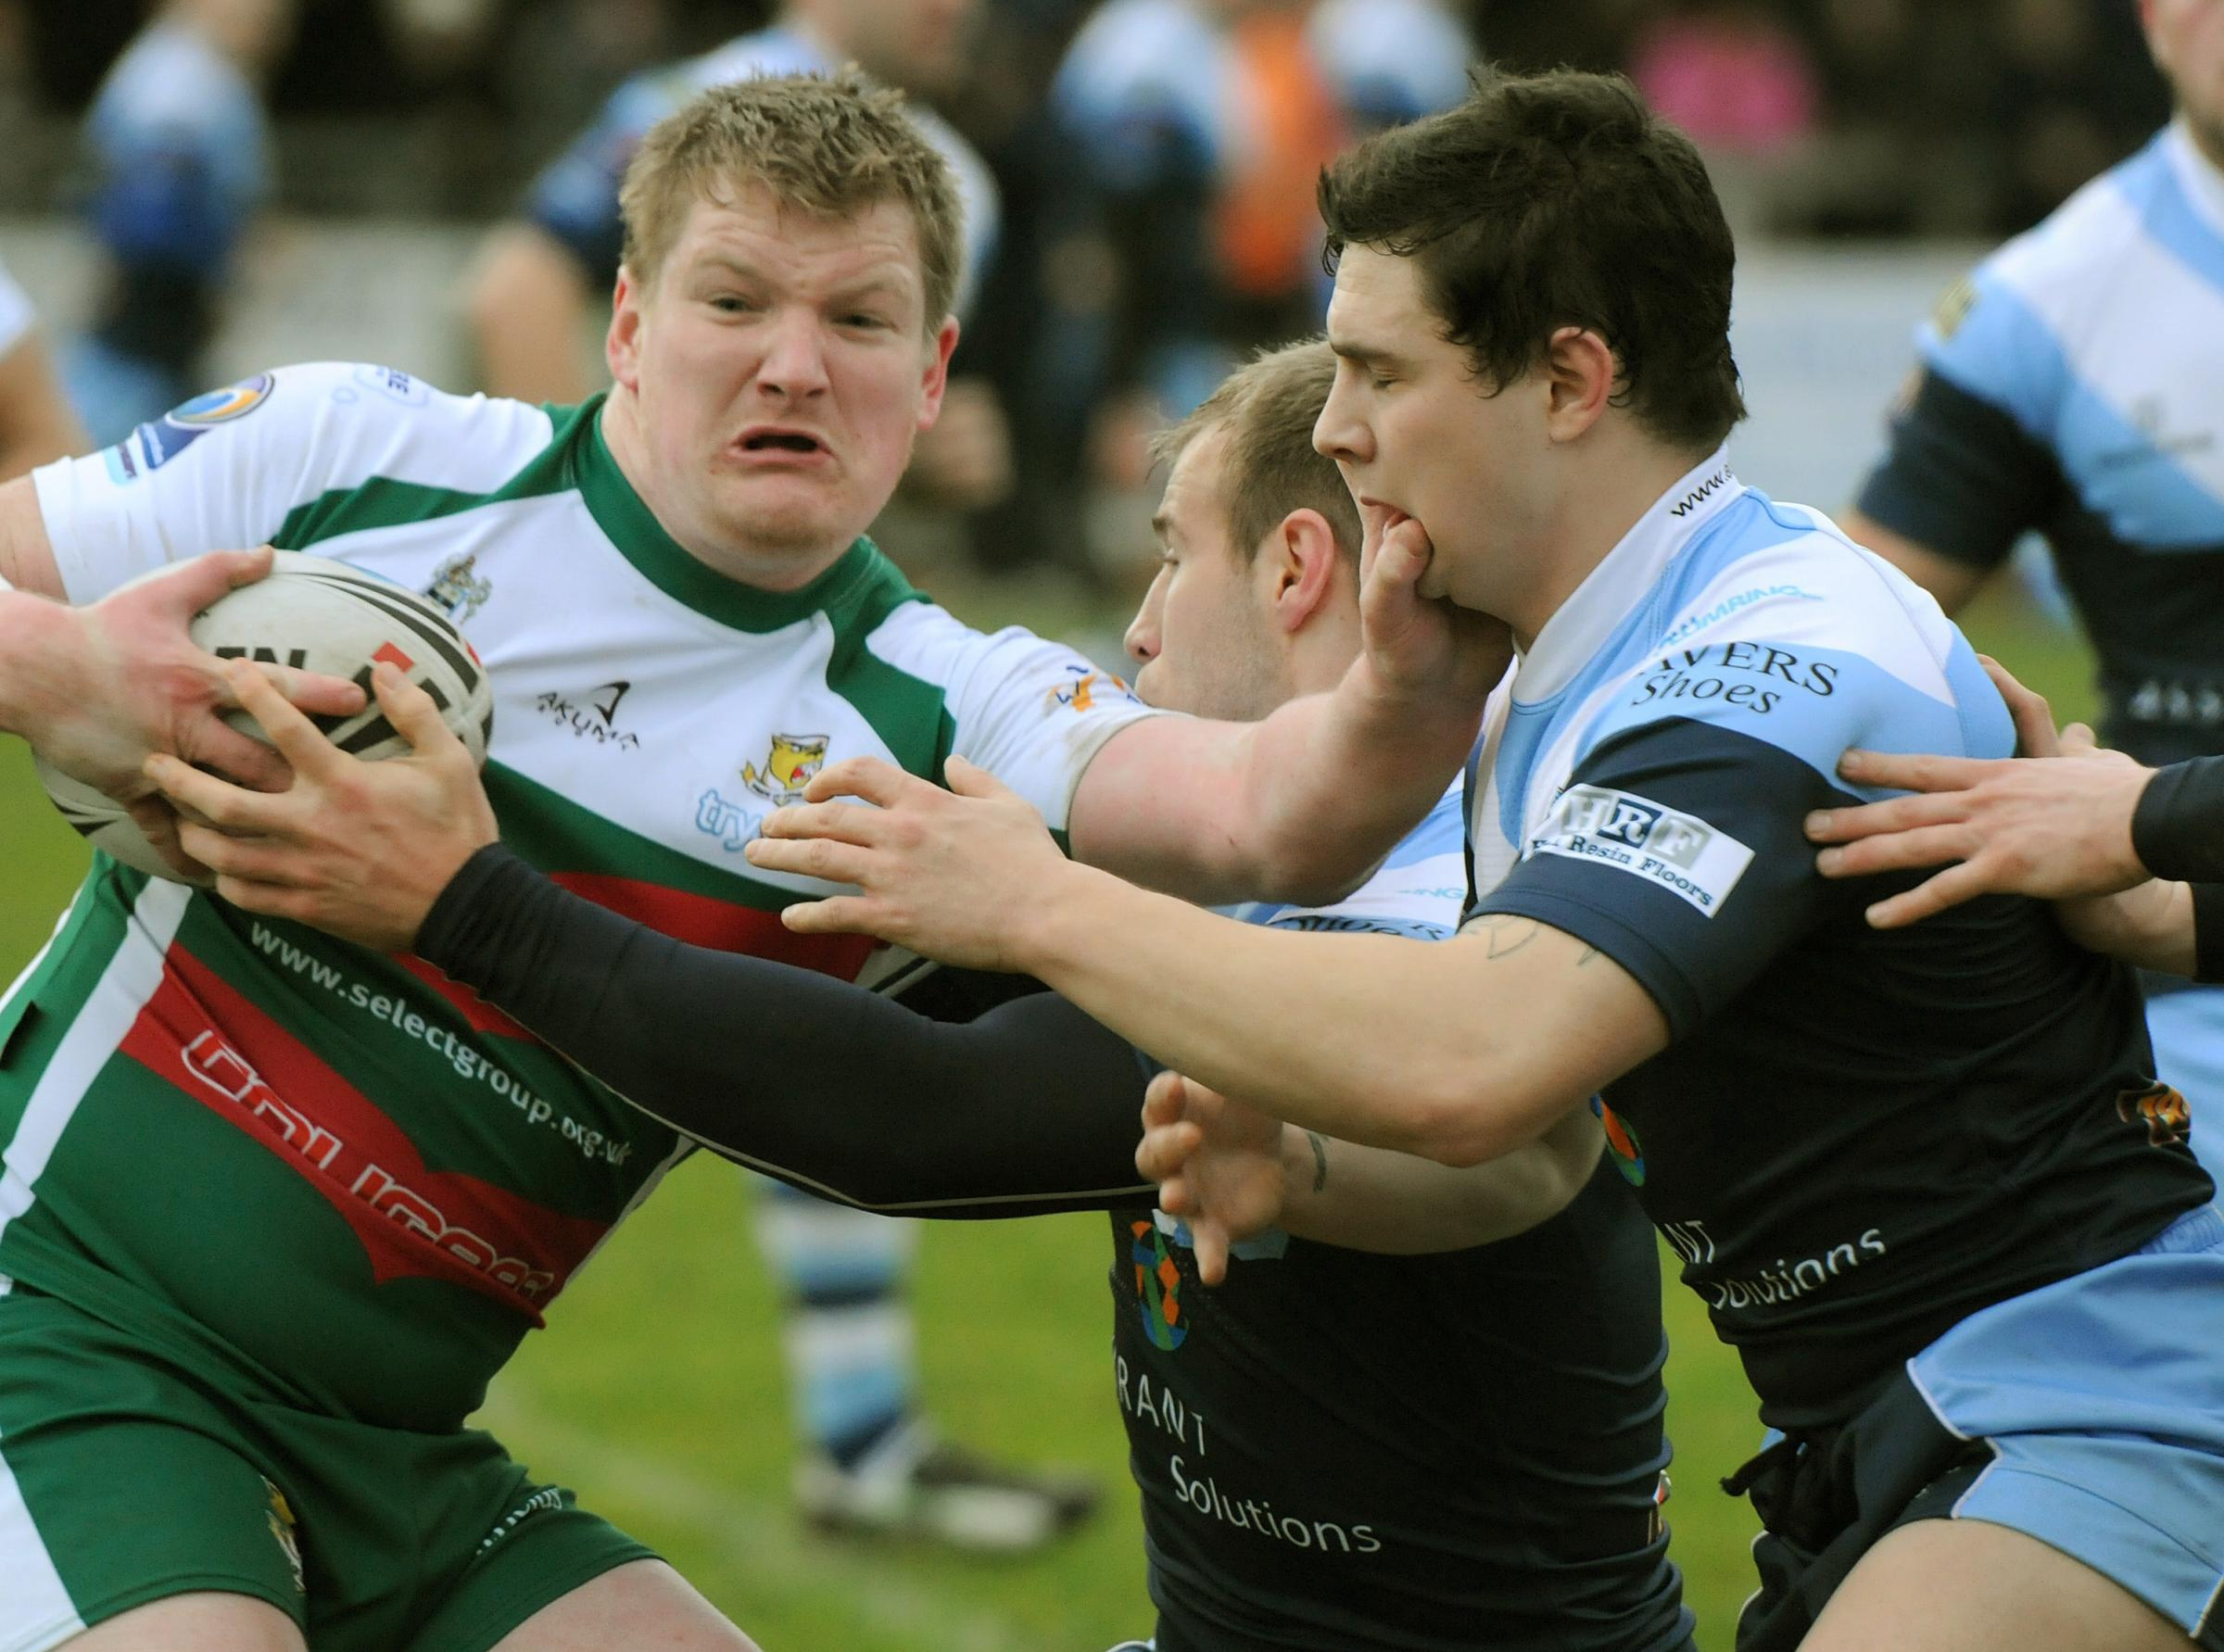 IN OPPOSITION RANKS: Chris Clough, left, the much-travelled former Knights second-row, who will play against York for Hemel tomorrow after joining the Hertfordshire club on loan from Hunslet